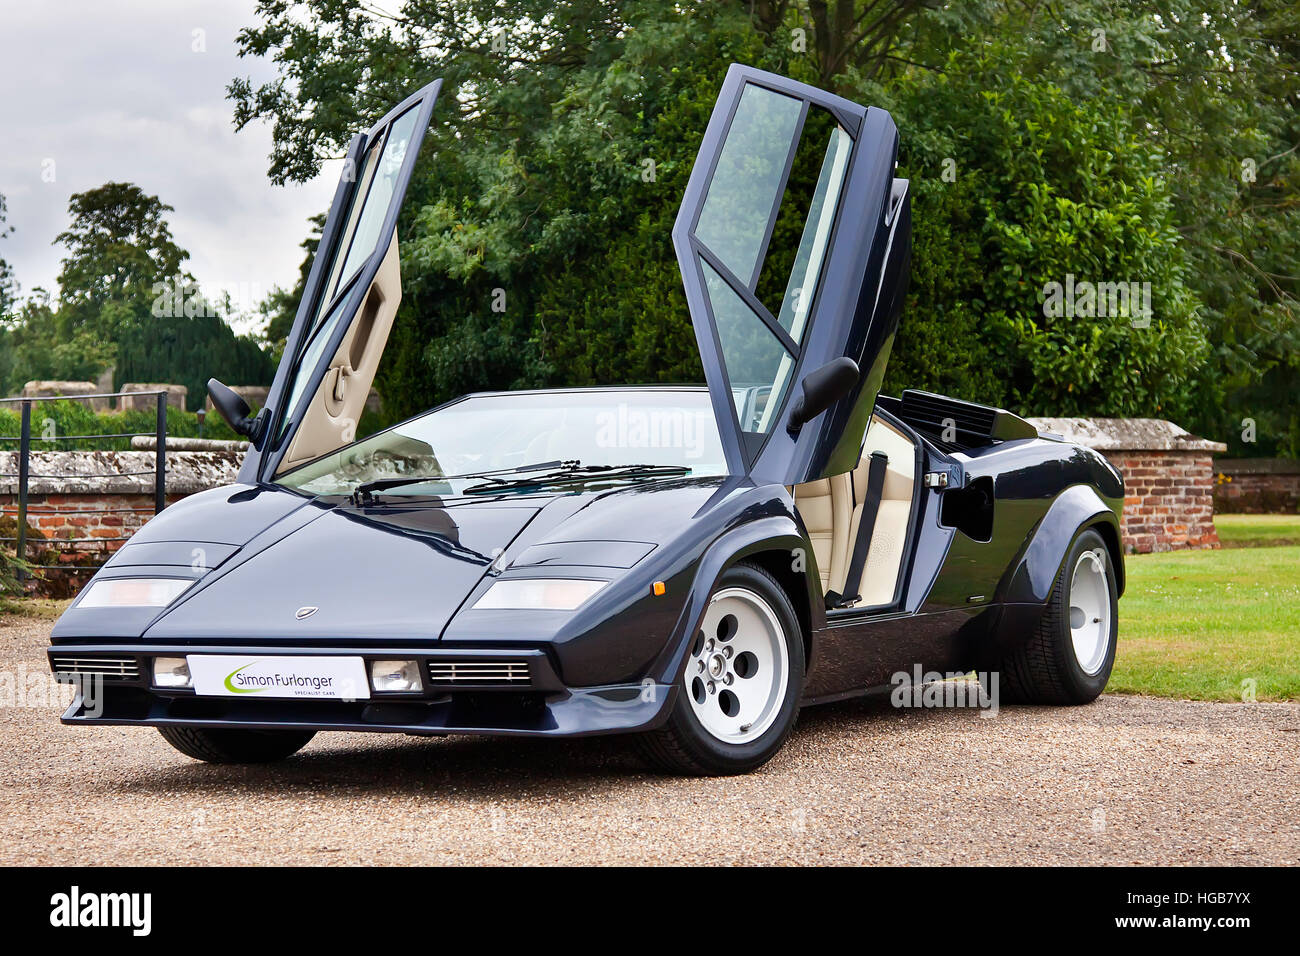 Lamborghini Countach 5000 Quattrovalvole Stock Photo